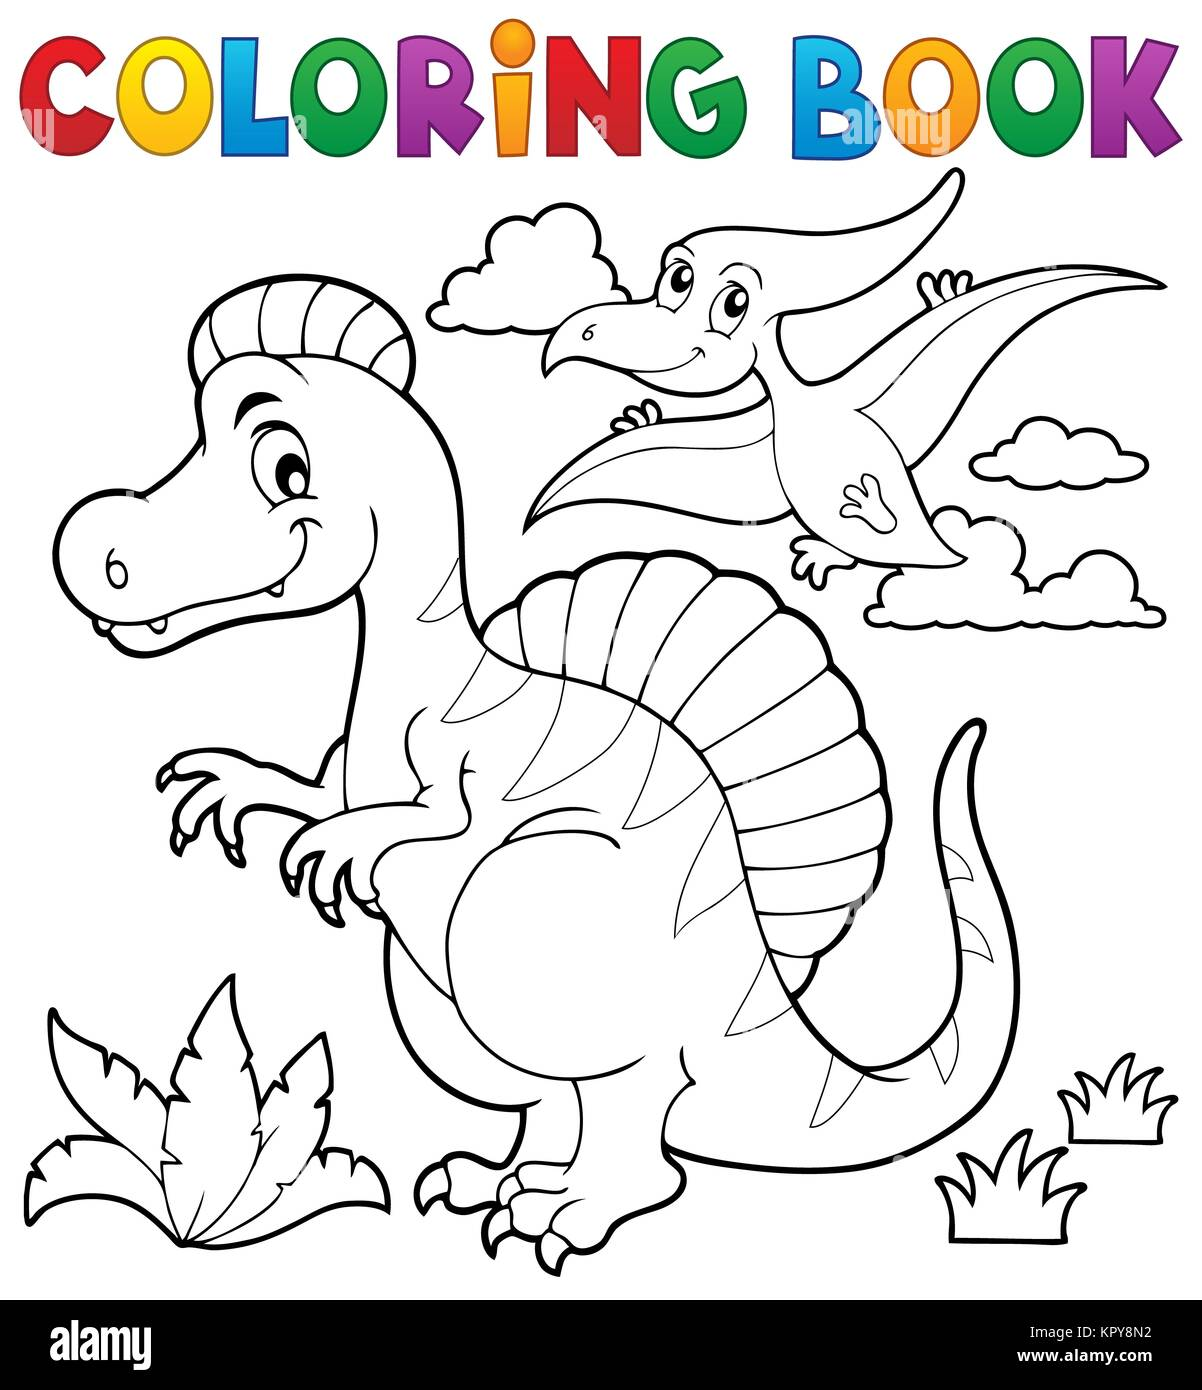 Coloring book dinosaur theme 2 - Stock Image